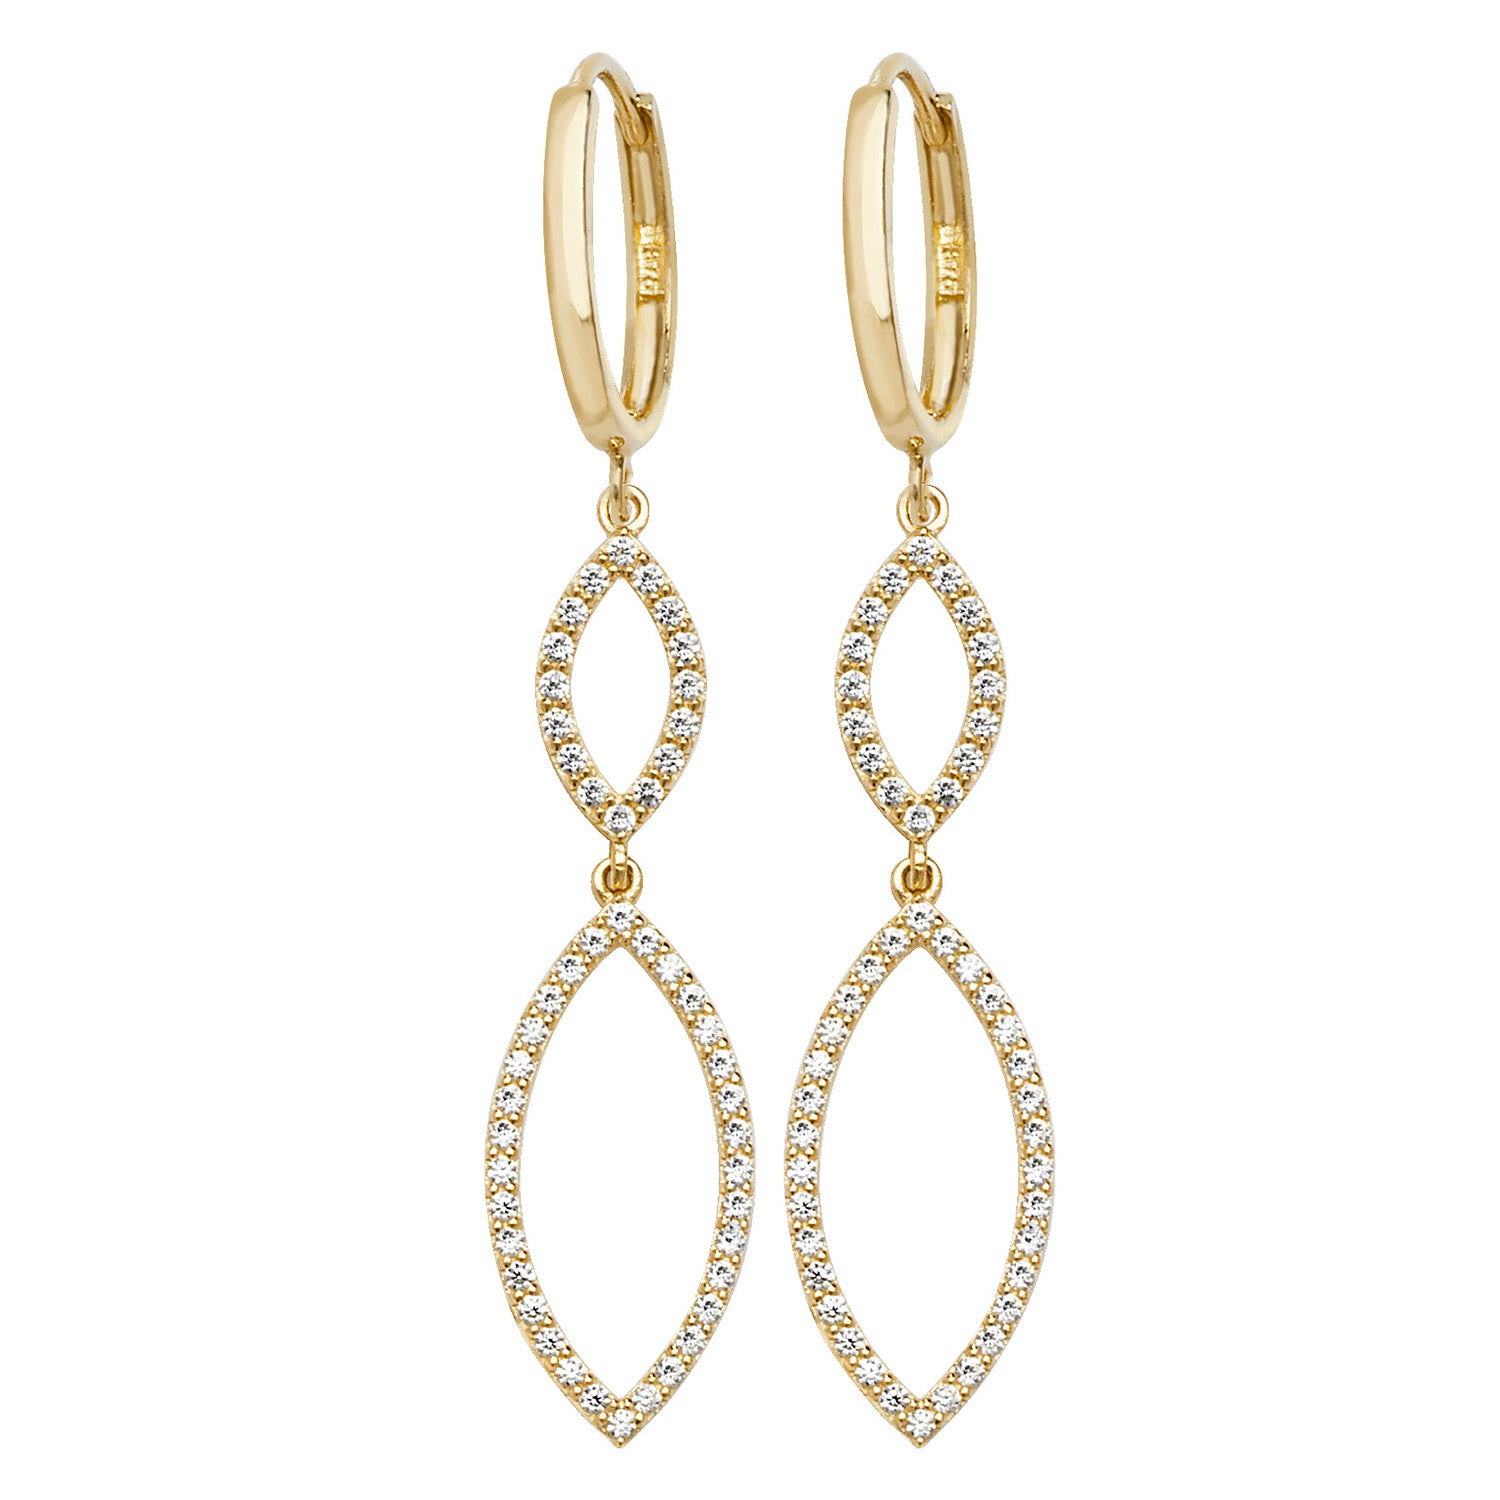 Cubic Zirconia Dropper Hoop Earrings